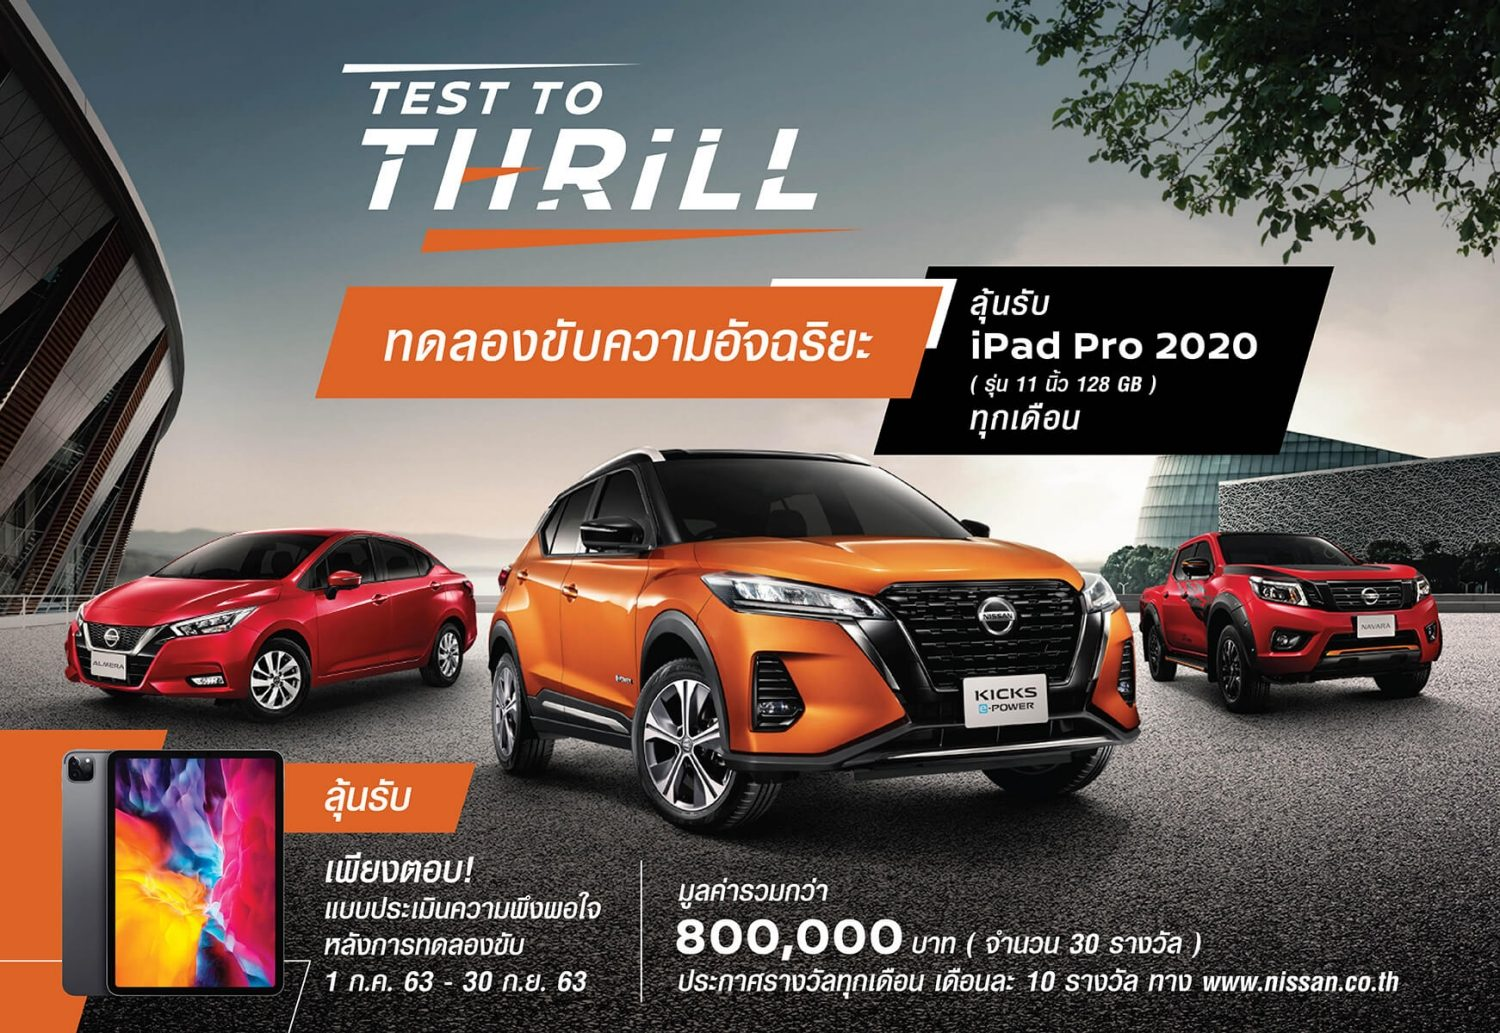 Nissan Test To Thrill